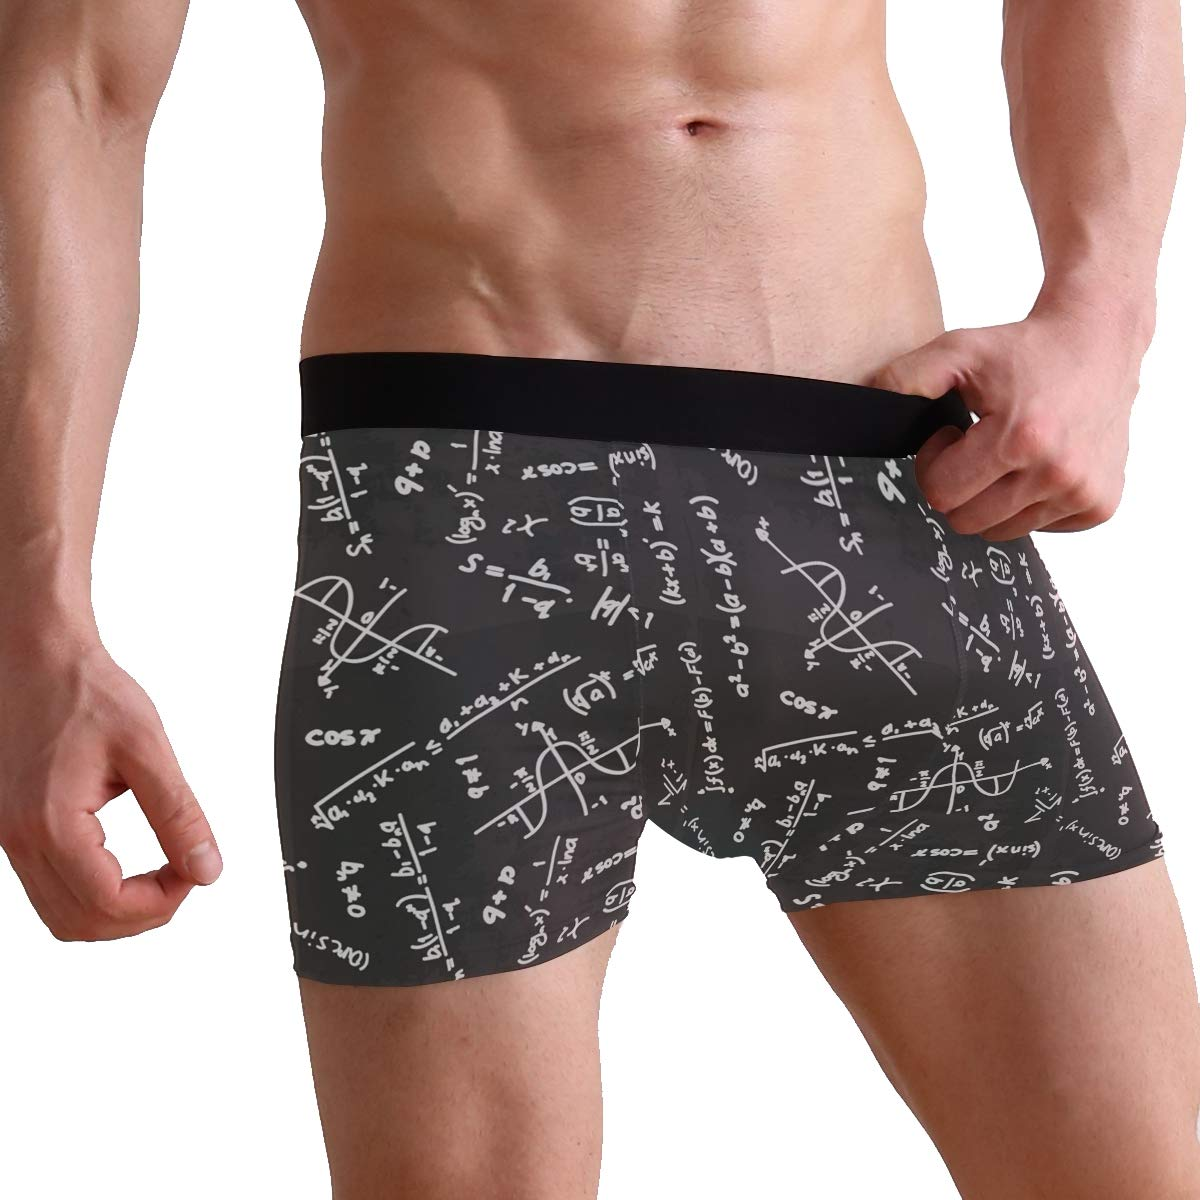 2 Charlley Lee Mens Soft Breathable Black Math Linear Equations Underwear Boxer Briefs